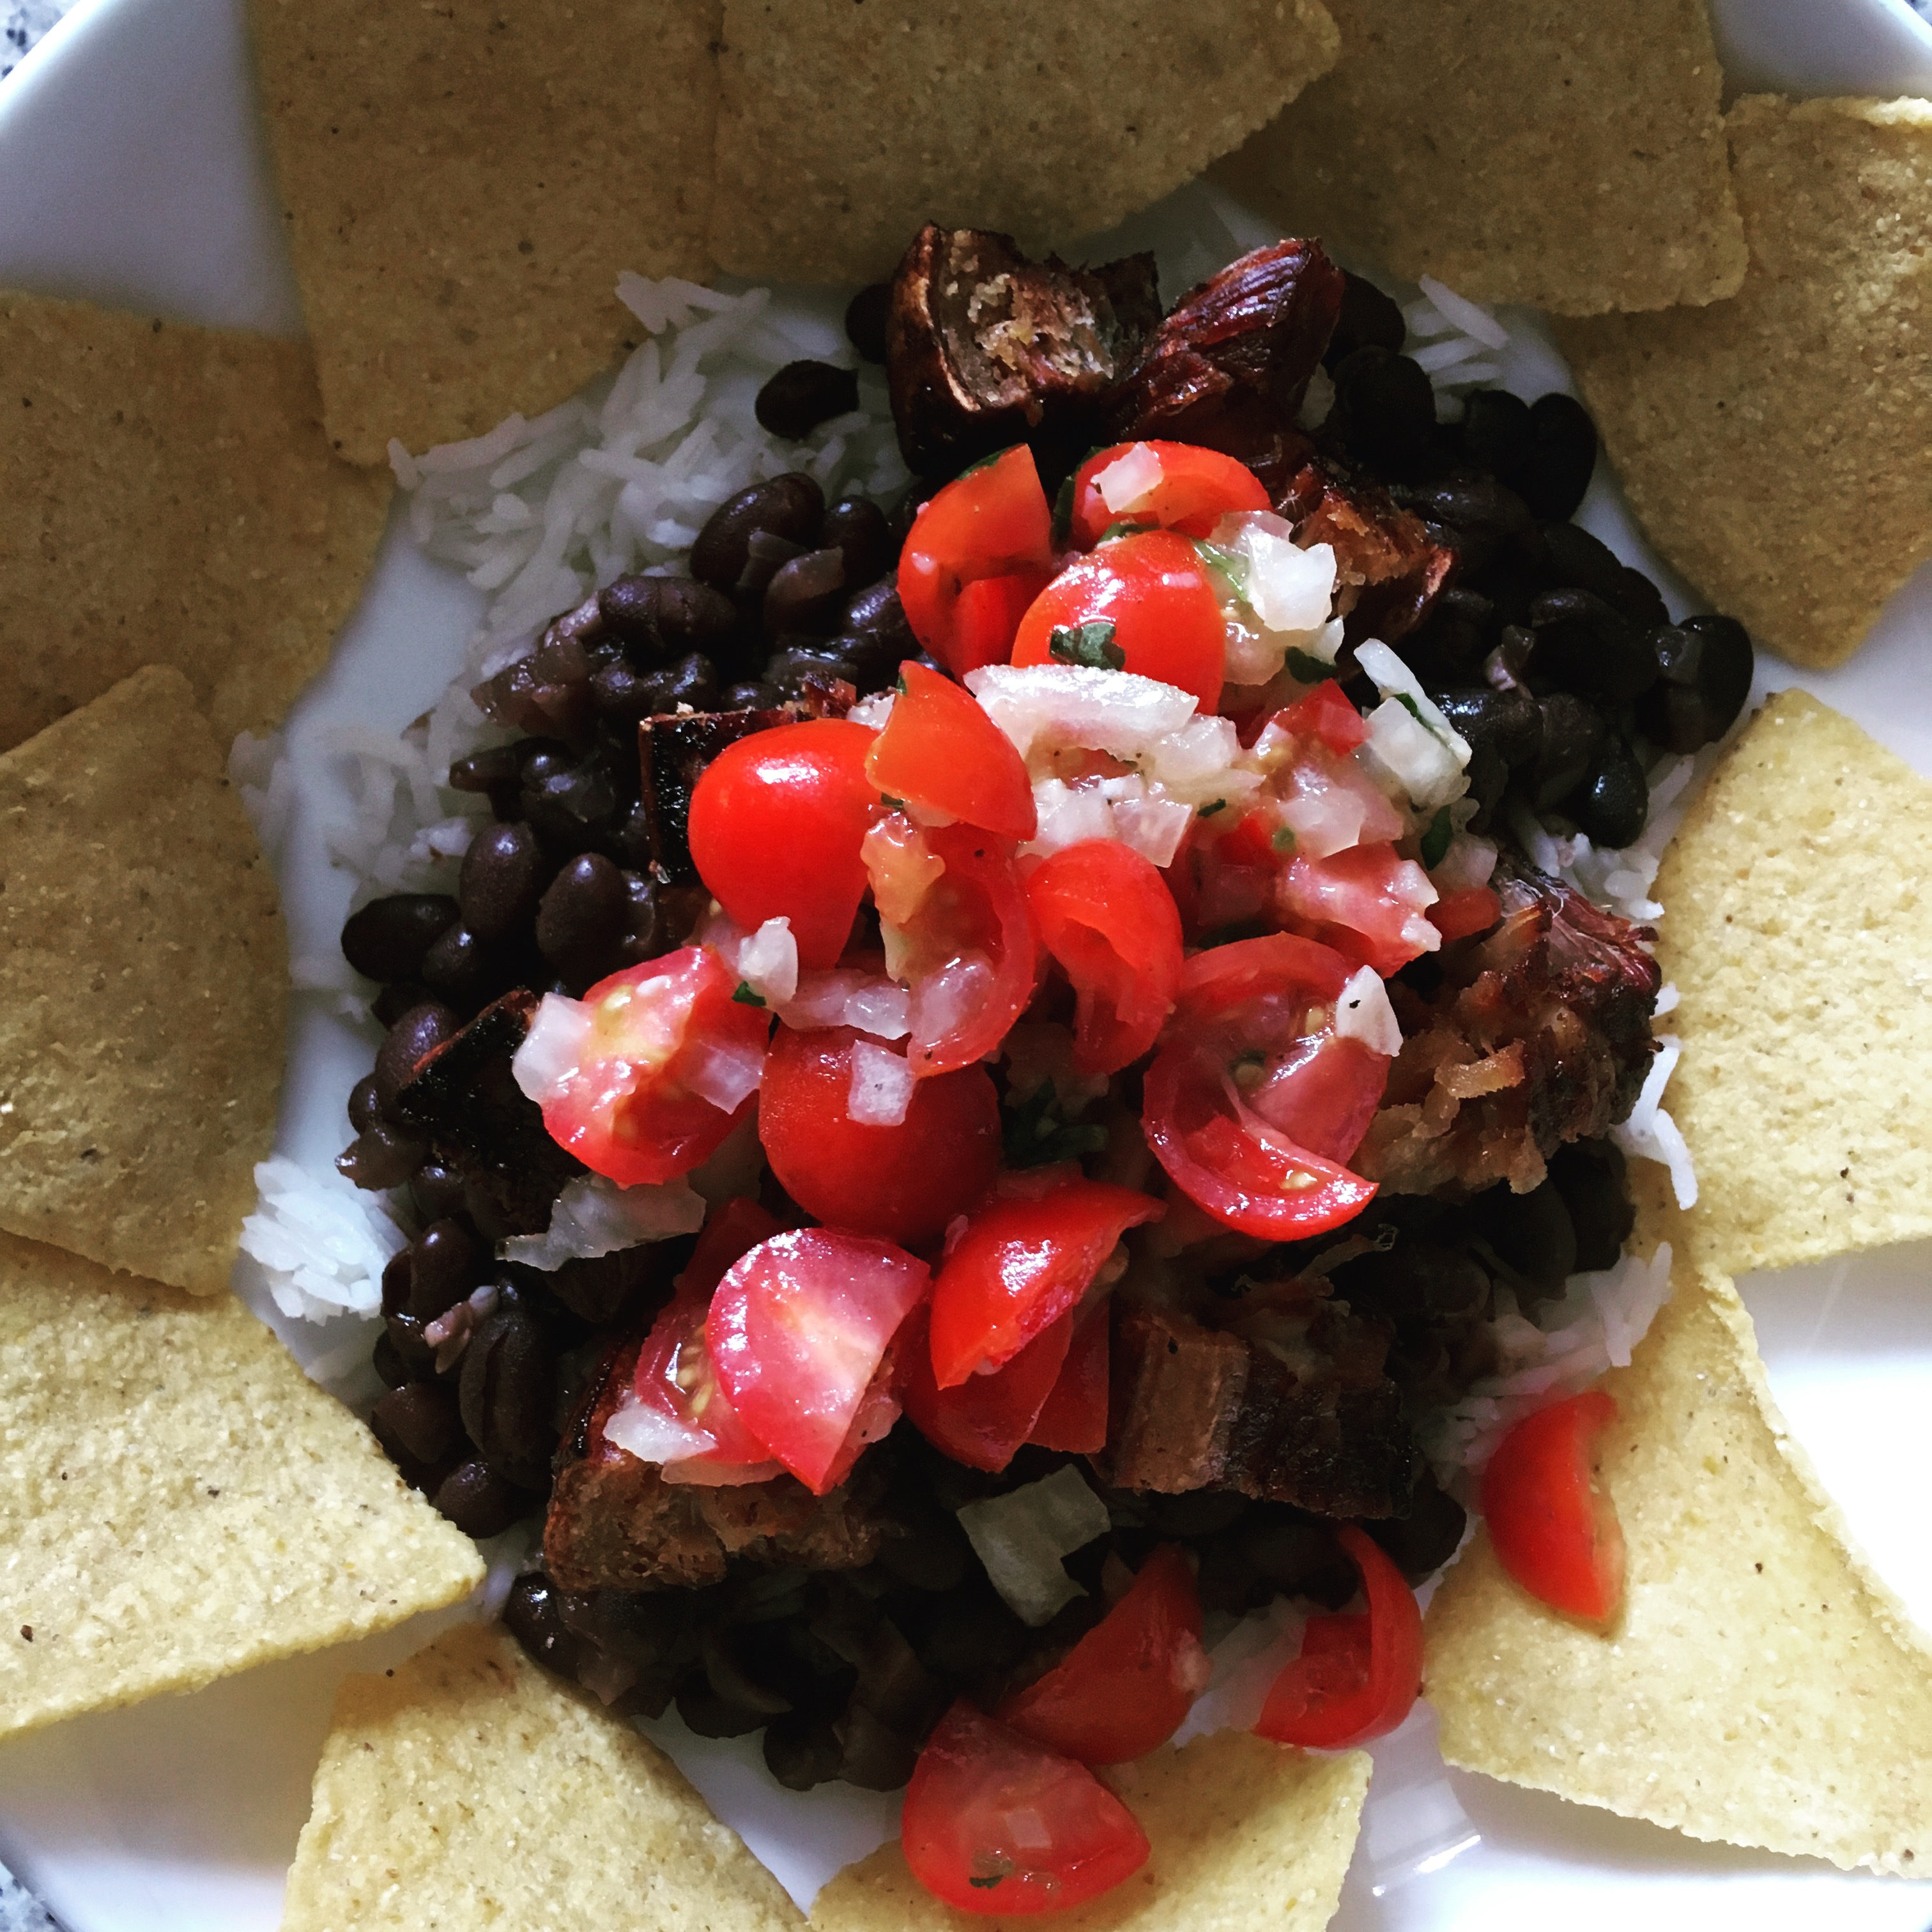 Pico de gallo and black beans